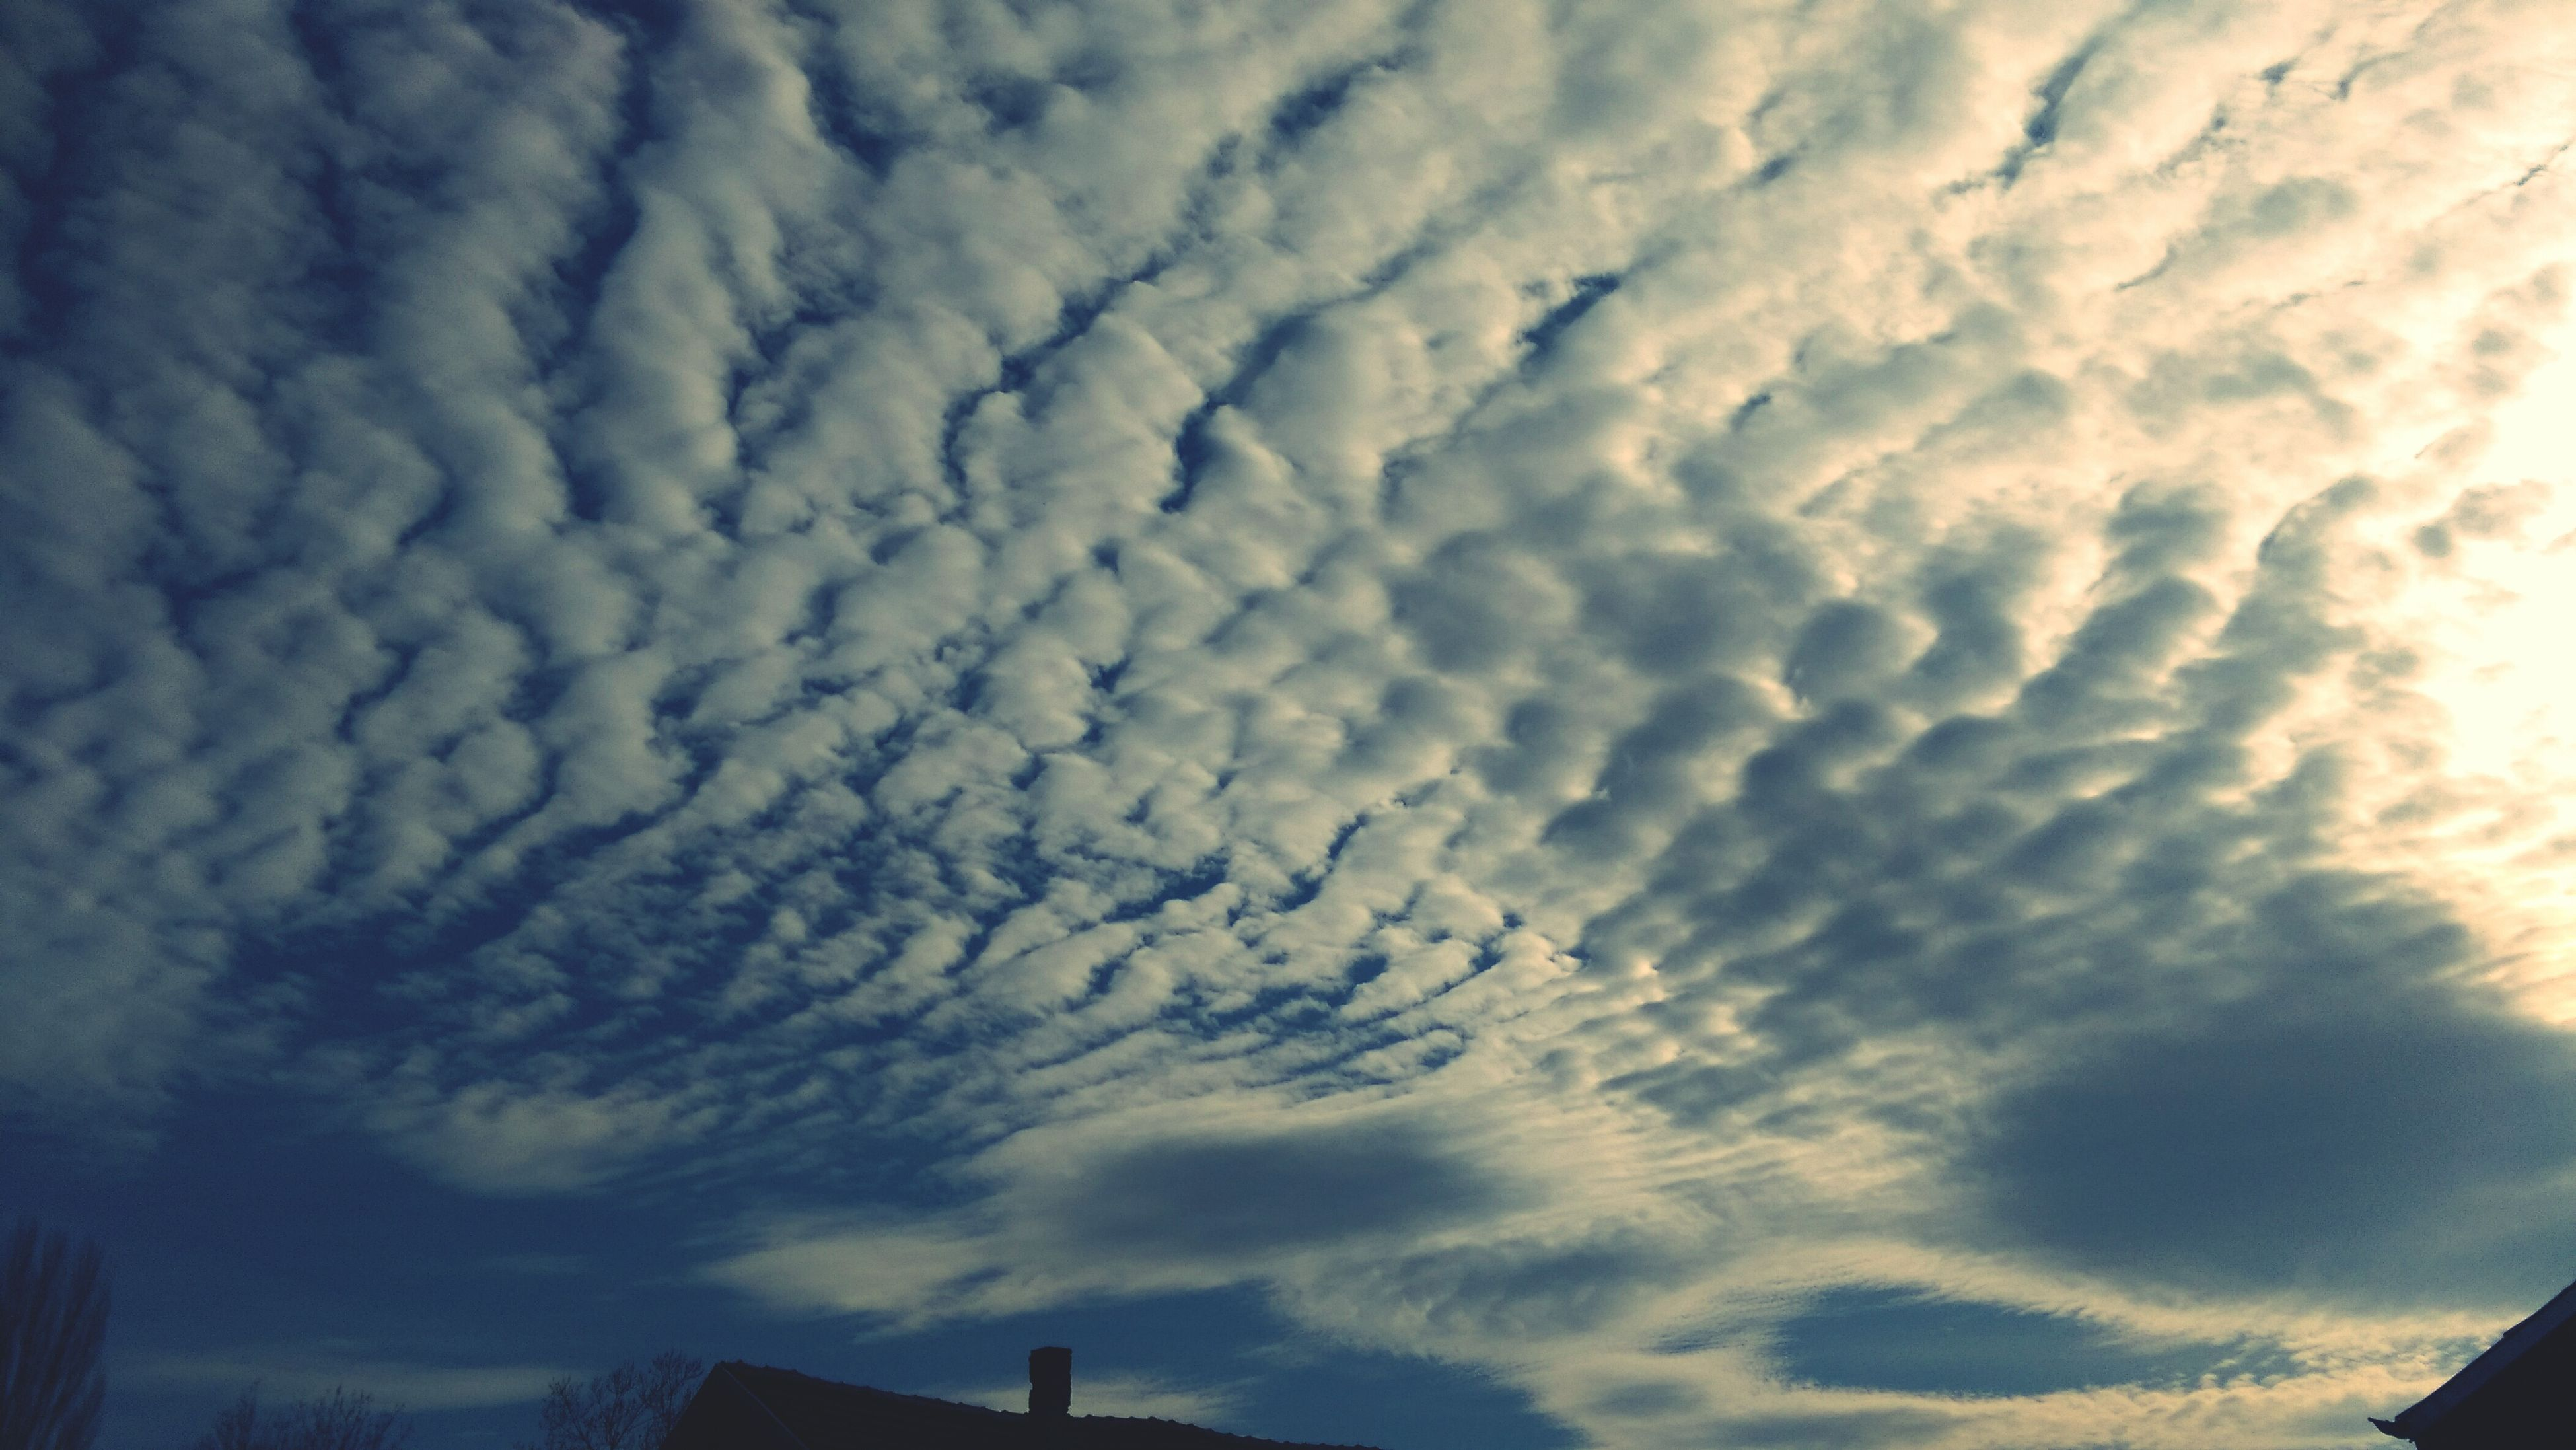 sky, cloud - sky, low angle view, cloudy, weather, beauty in nature, built structure, building exterior, cloud, scenics, cloudscape, architecture, nature, silhouette, overcast, tranquility, high section, outdoors, tranquil scene, dramatic sky